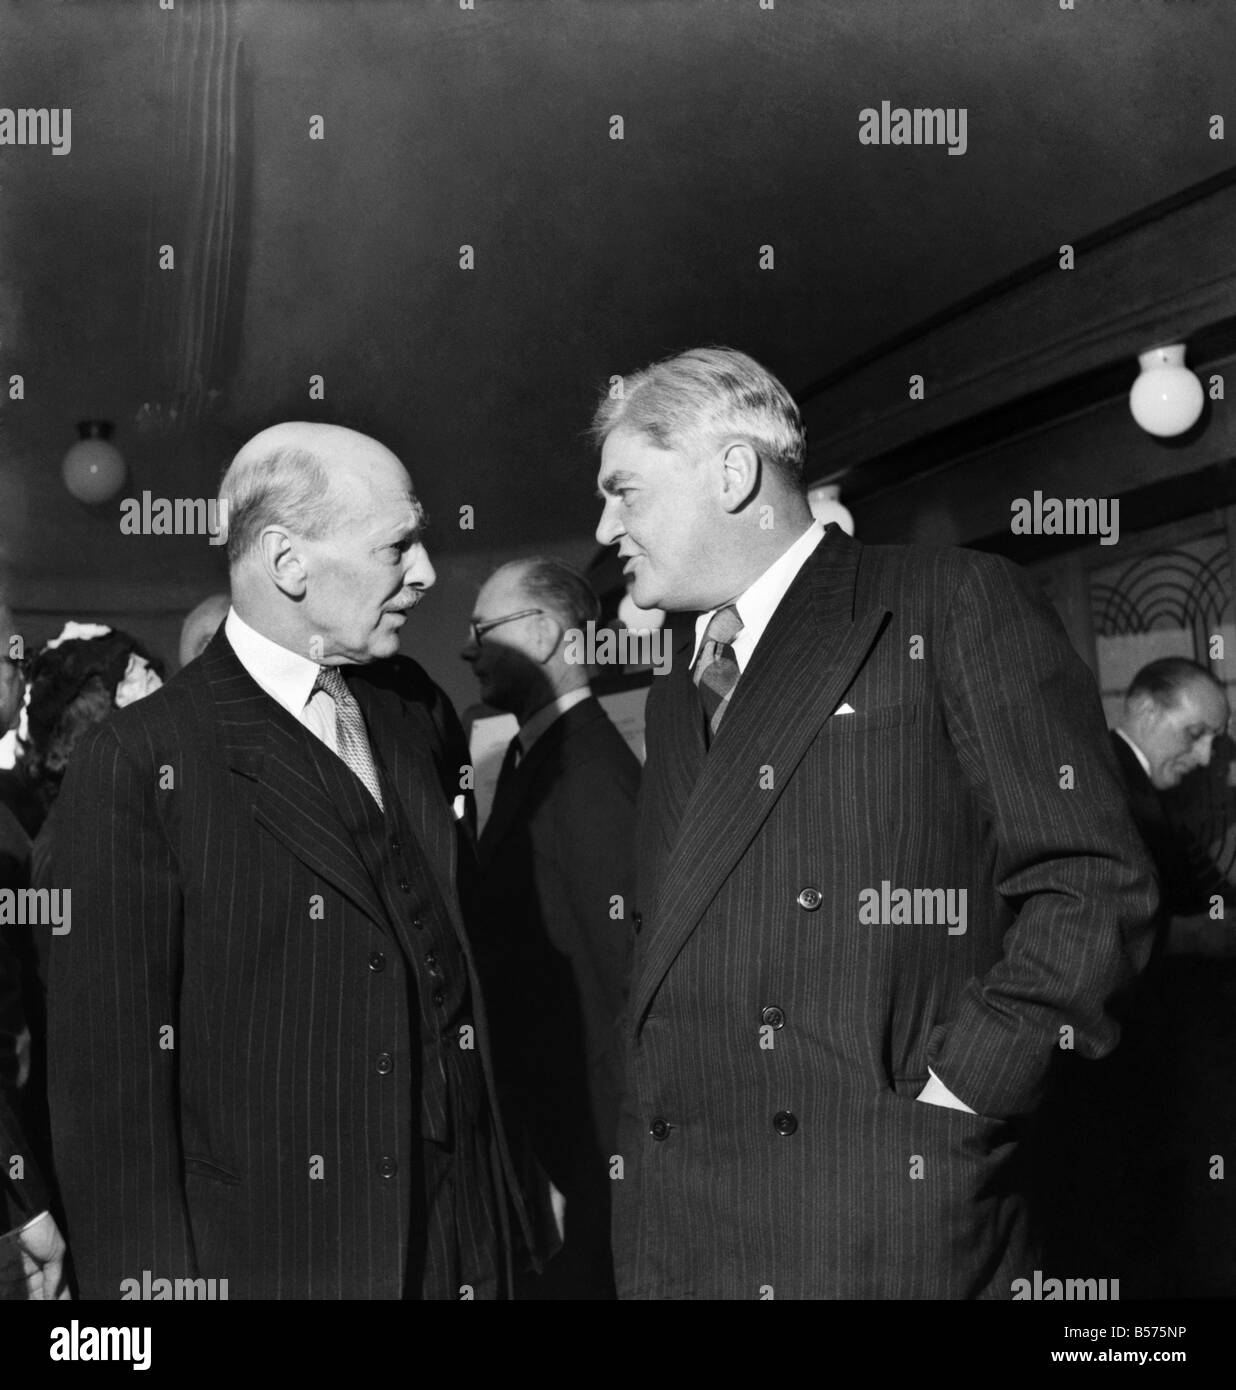 Labour Party Conference 1953: Nye Bevan and Clement Attlee former Prime Minister and Leader of the Labour Party - Stock Image